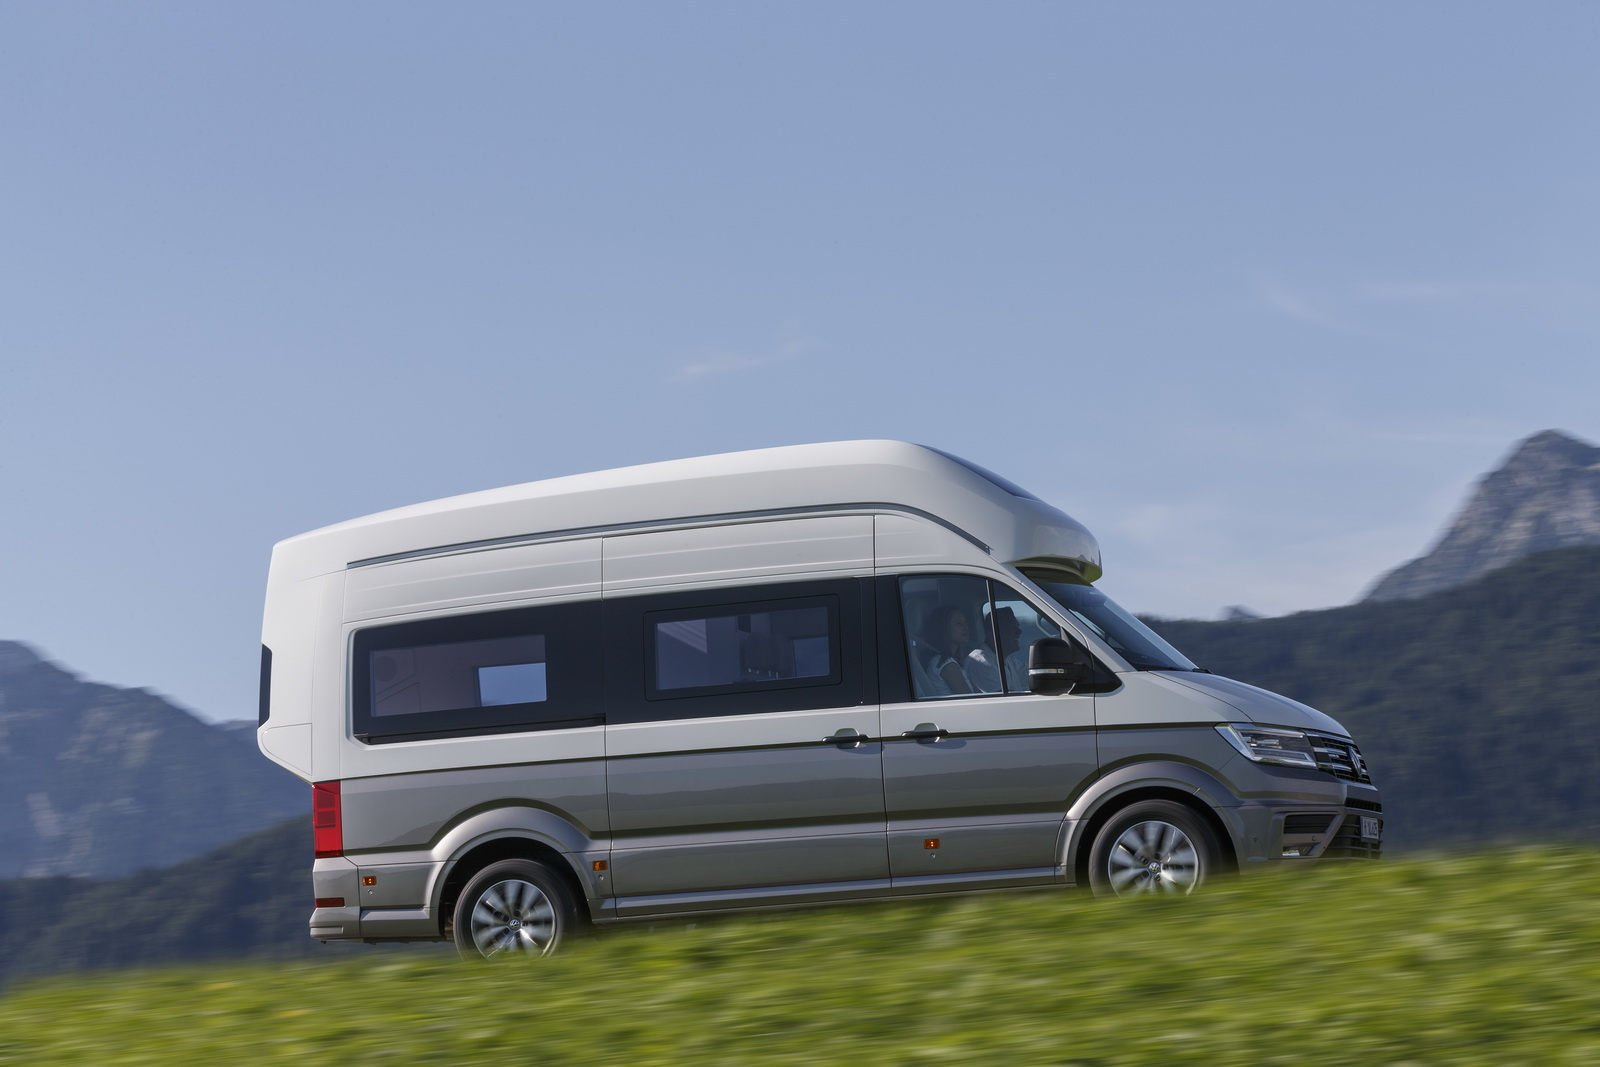 Campervans For Sale >> VW California XXL Concept Is Big Camper Van For Globetrotters [41 Pics] | Carscoops